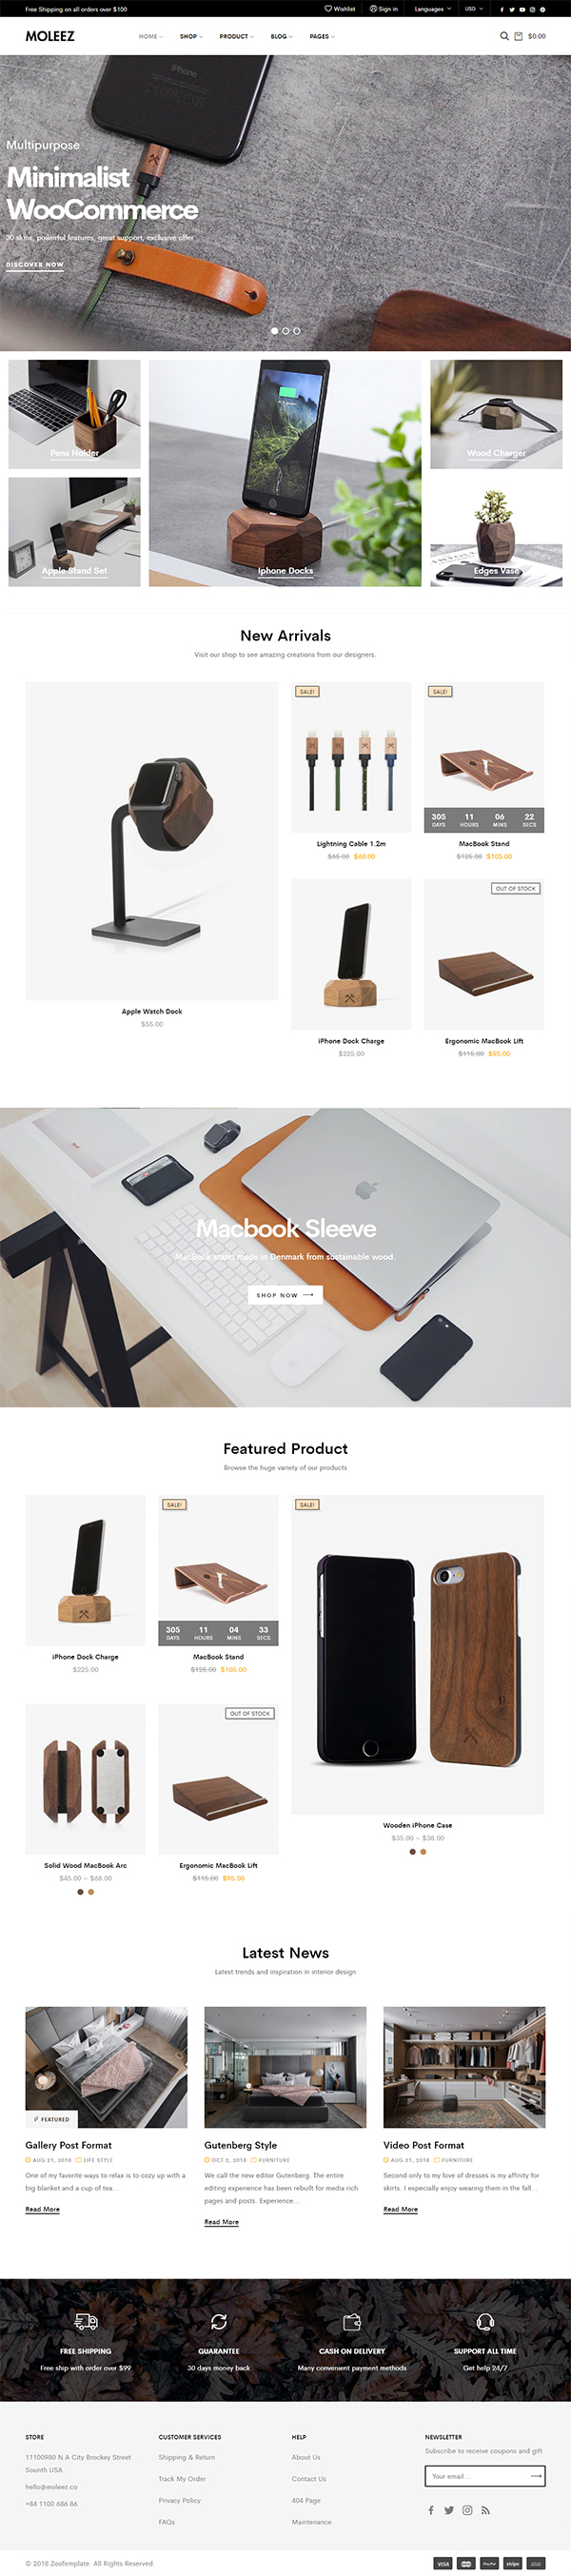 Moleez - Minimalist WordPress Theme for WooCommerce